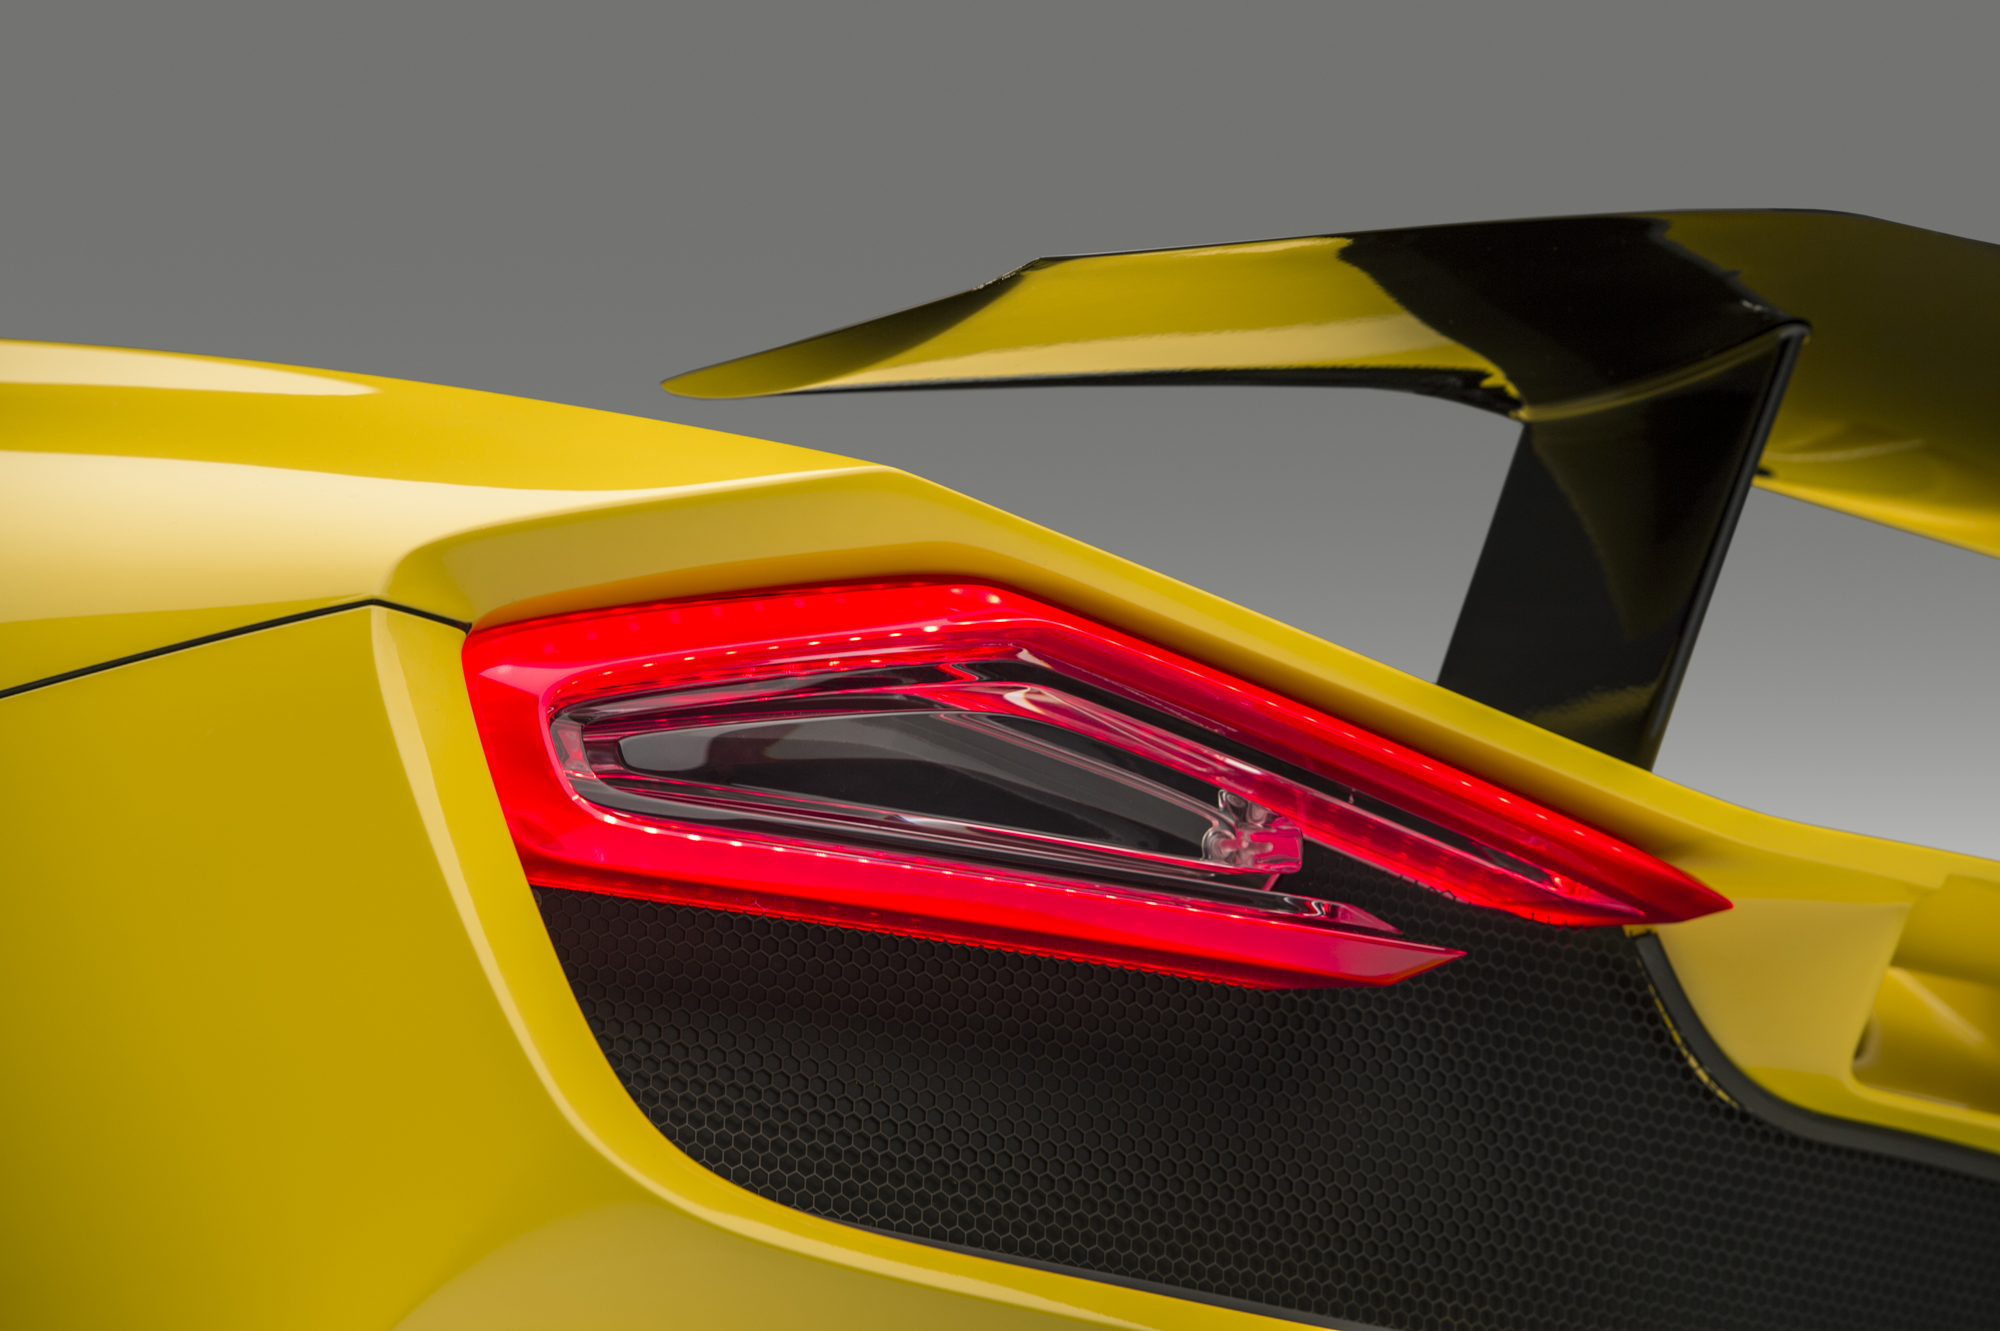 Hennessey Venom F5 Rear Close Up Photo